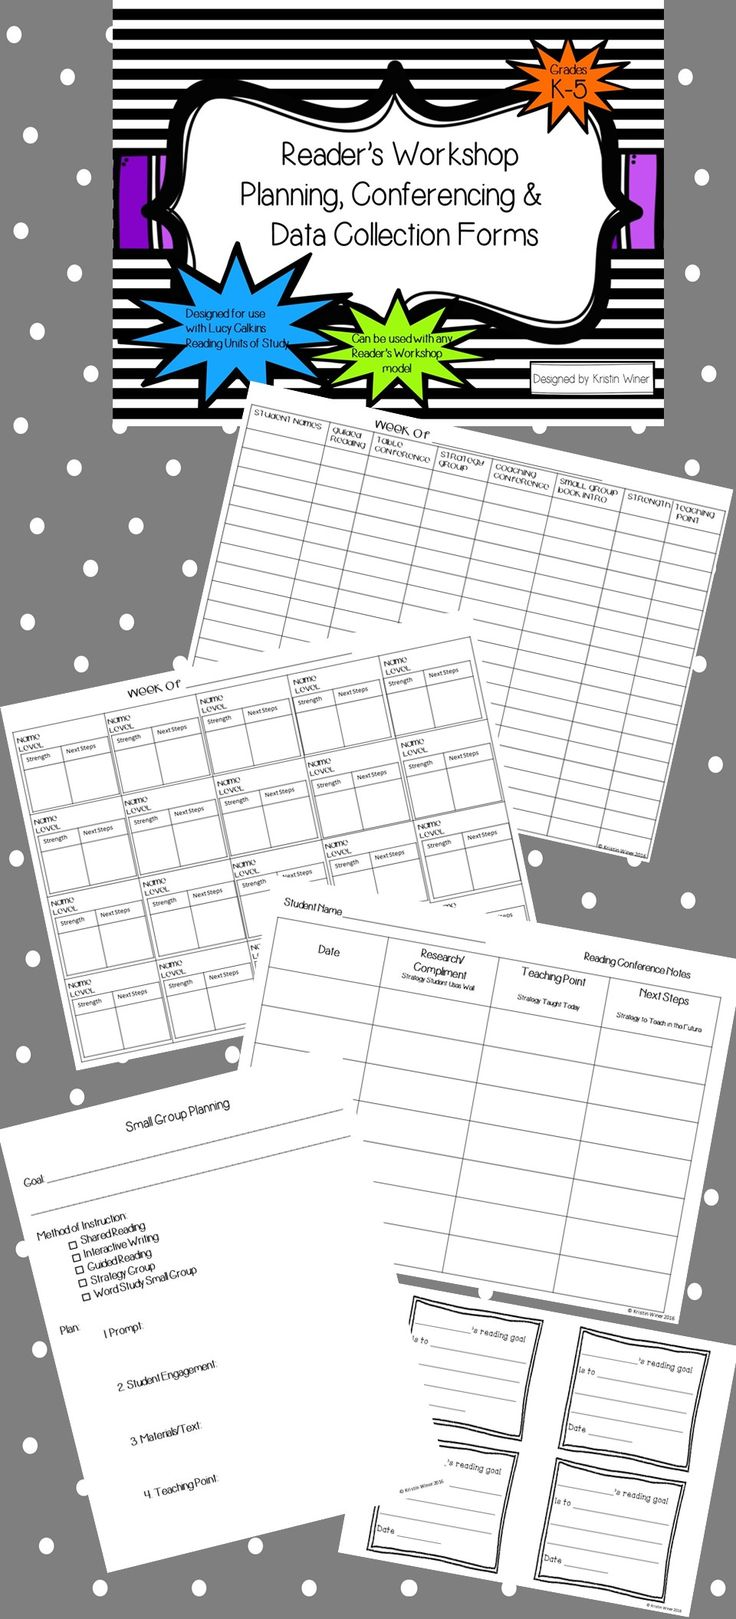 Struggling with how to organize all your guided reading, strategy groups and one-on-one conferencing during readers workshop? Look no further! This file will help you track student data and plan for small groups. This file reflects Lucy Calkins Reader's Workshop but can be used with any workshop model.